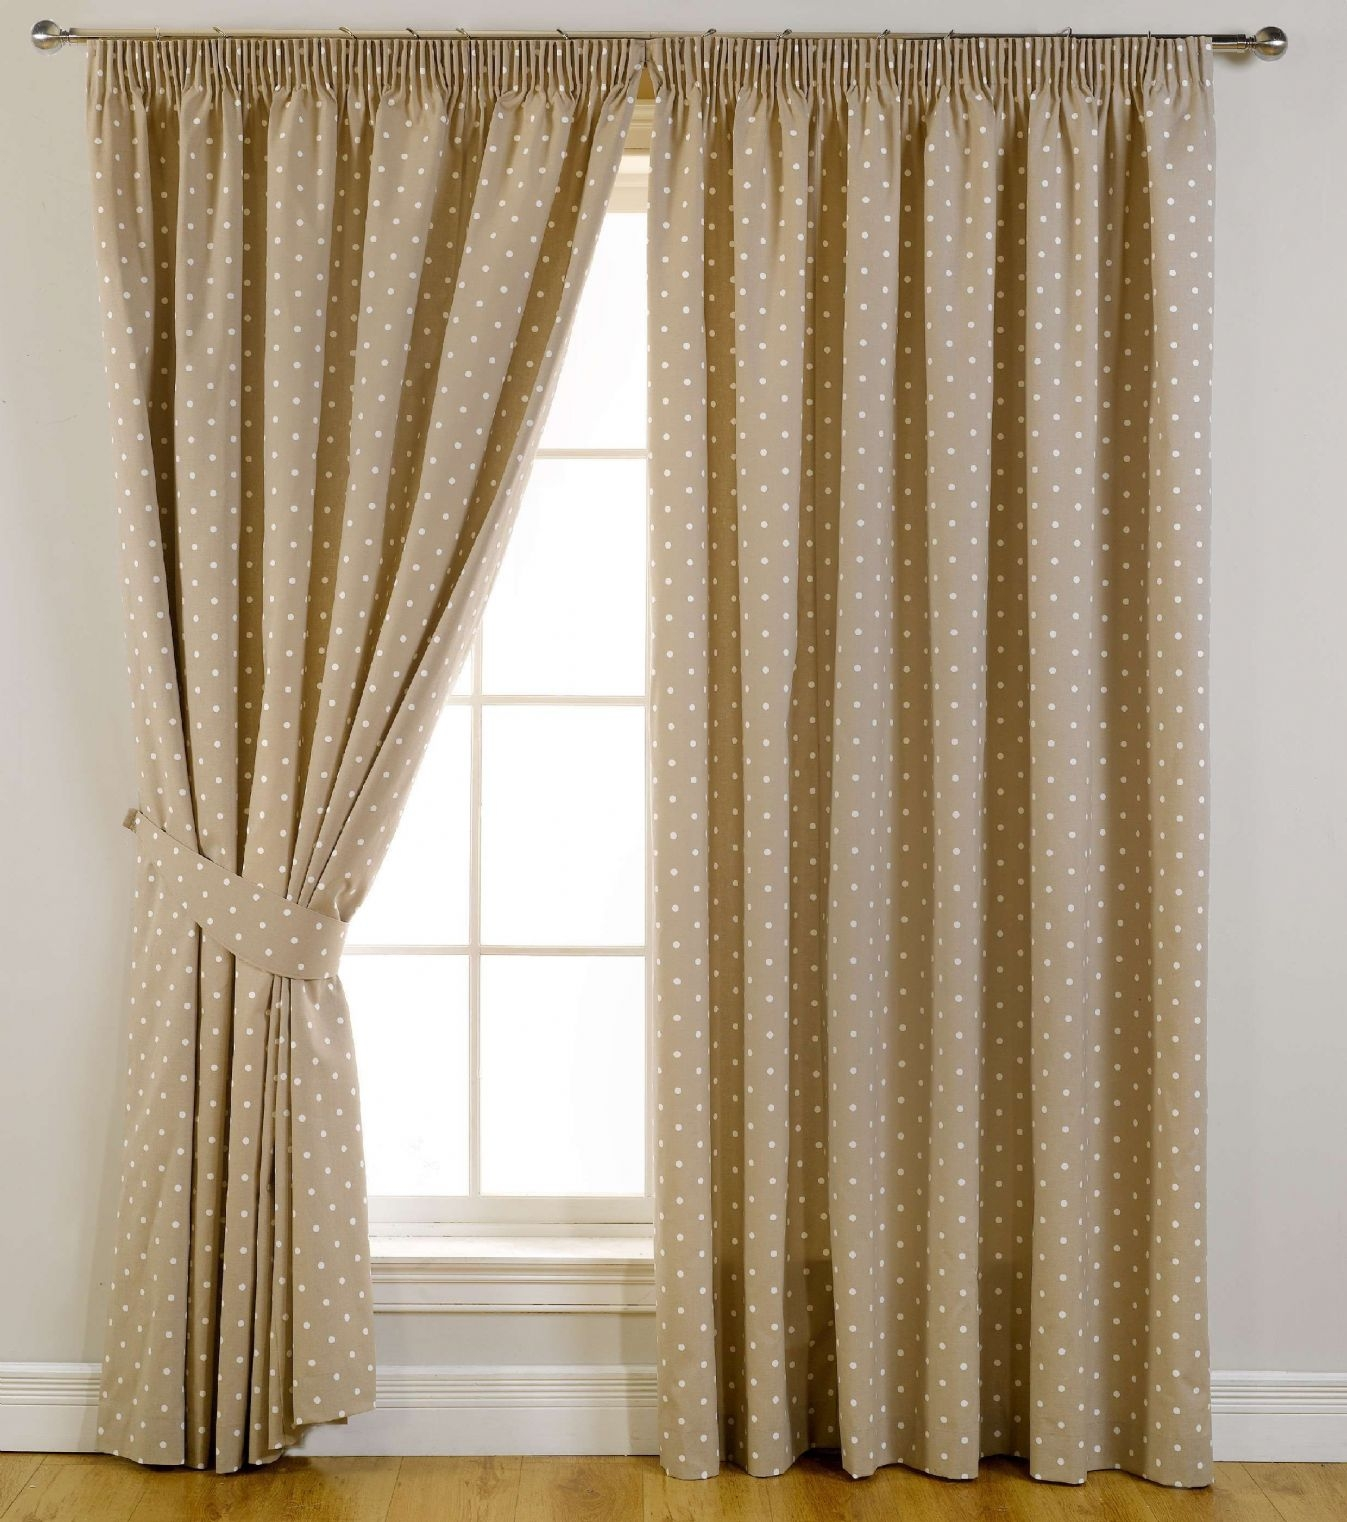 Bedroom Window Curtains French Style Drapery Swags And Tails Inside Curtains For Bedrooms (Image 8 of 25)